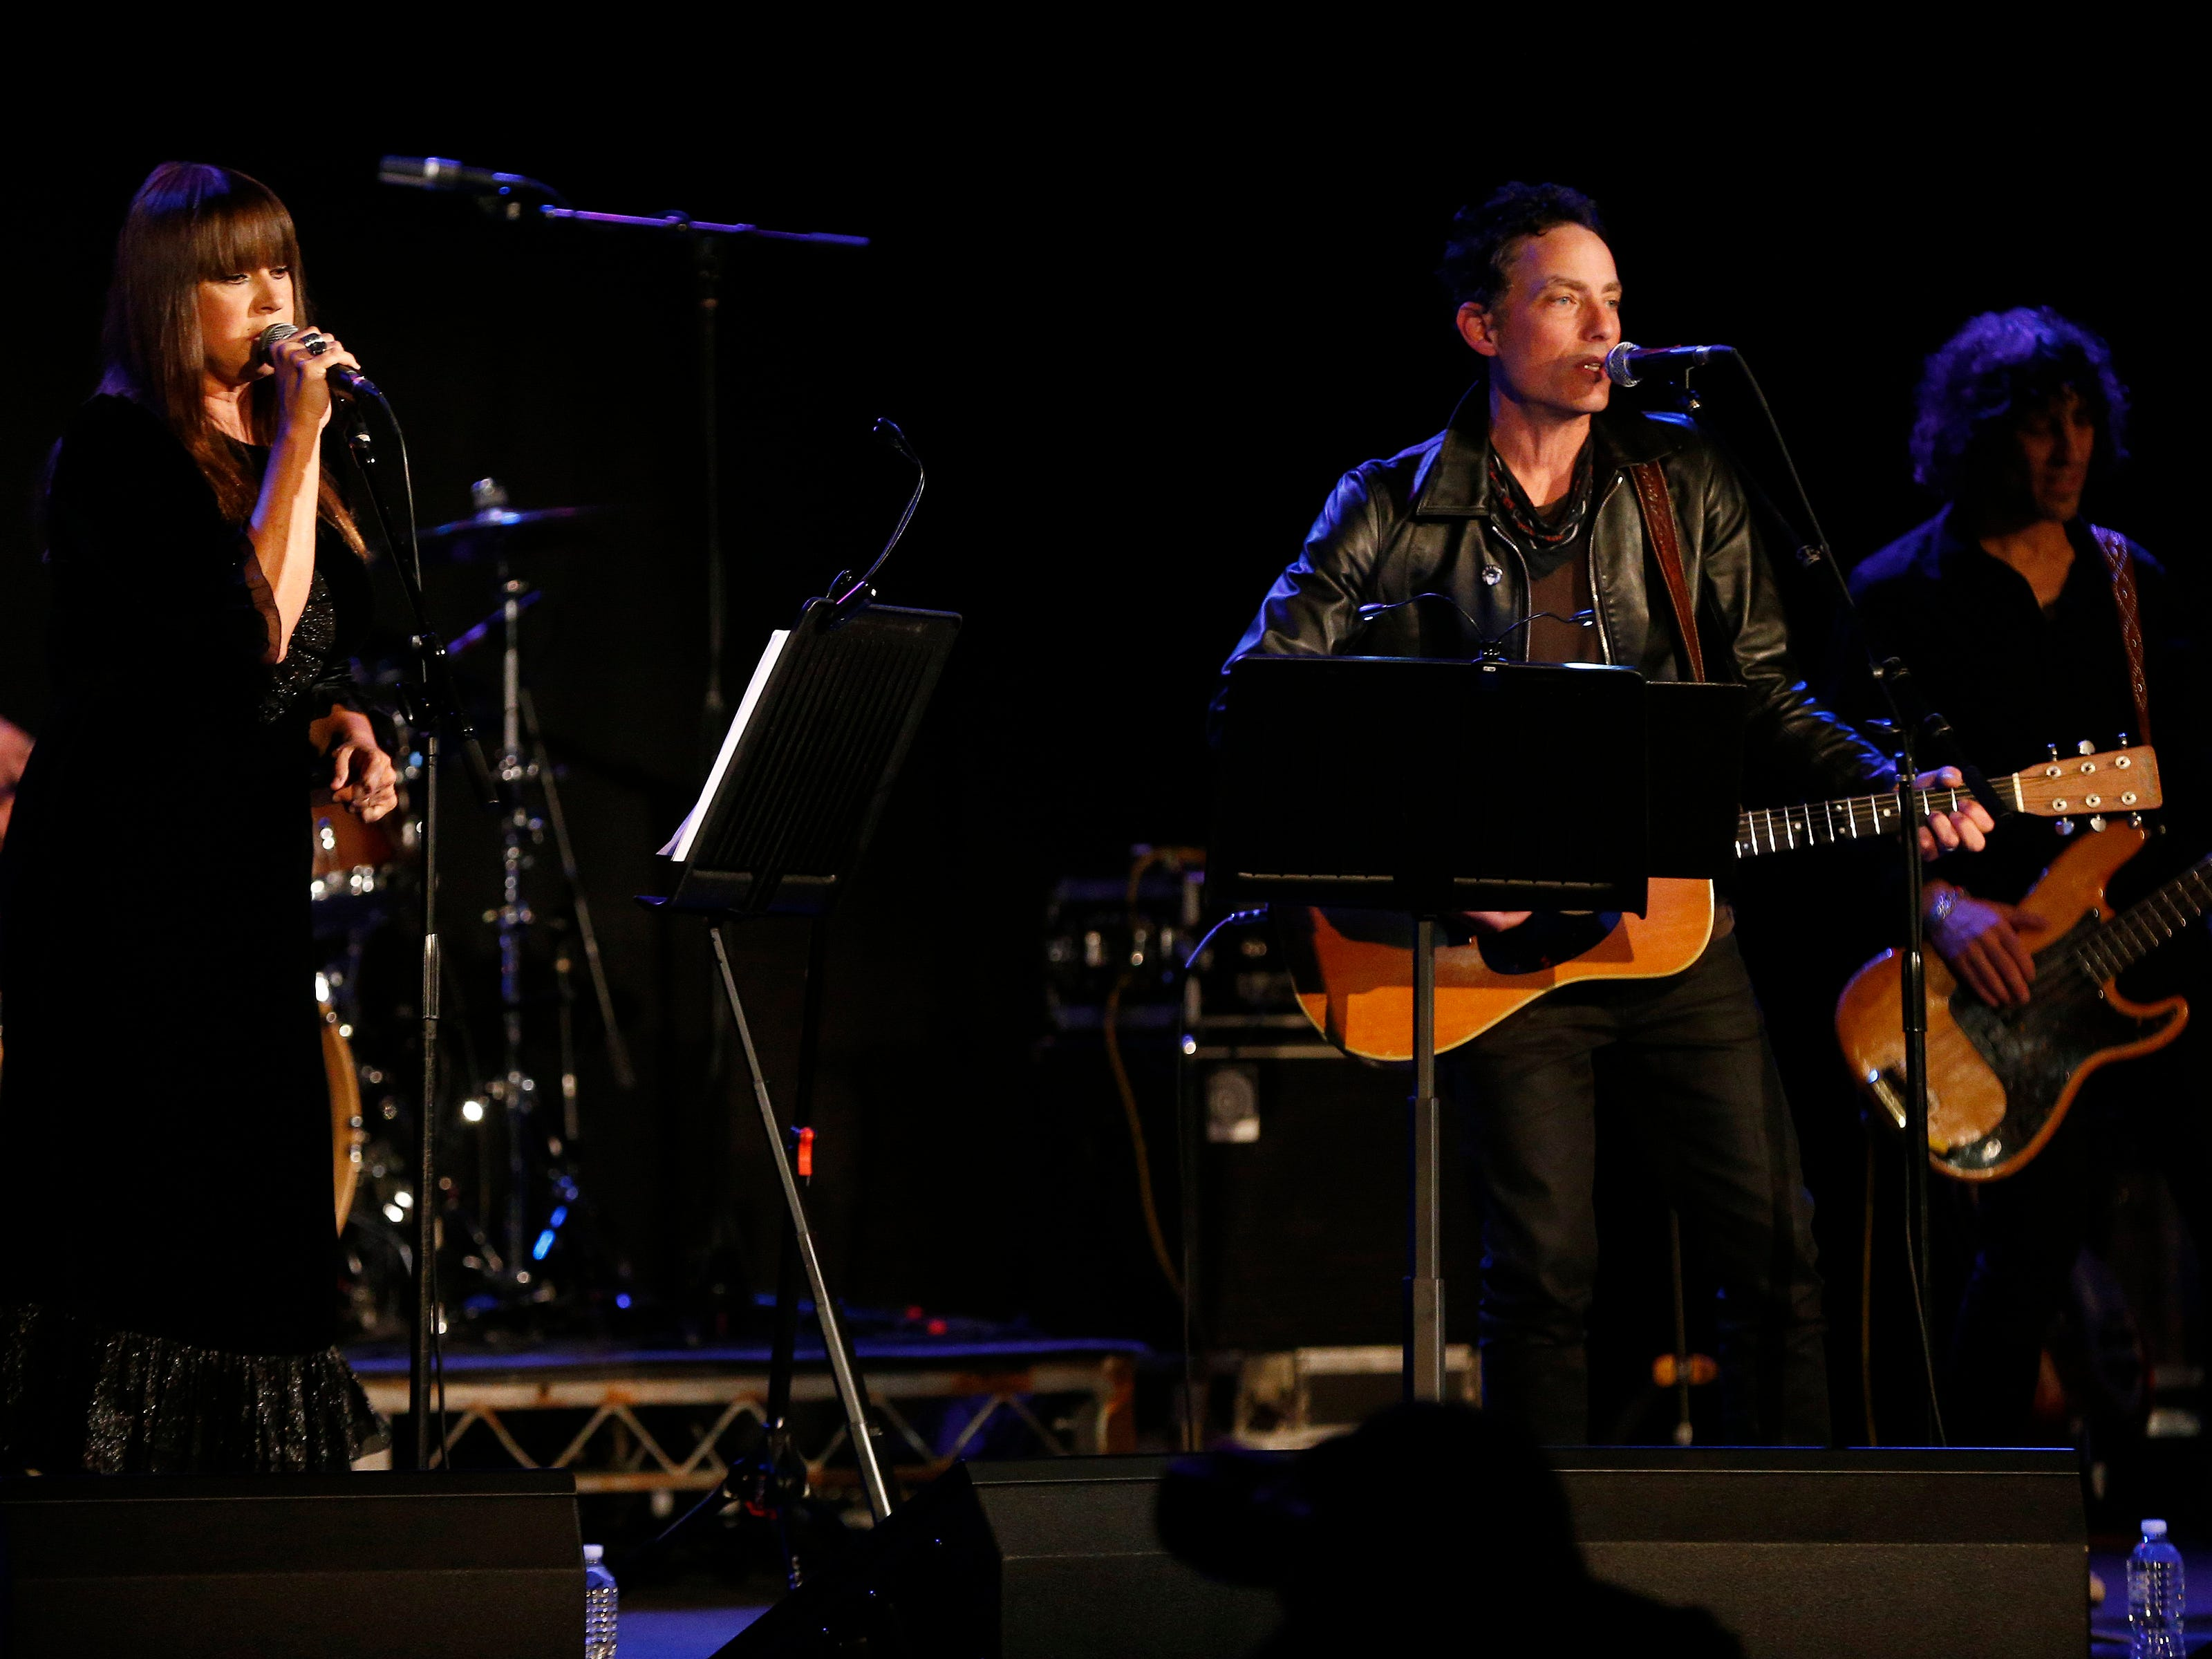 """Jakob Dylan performs with Cat Power at the Paramount Theatre Thursday night, April 25, 2019, after a screening of """"Echo in the Canyon"""" at the Asbury Park Music + Film Festival."""